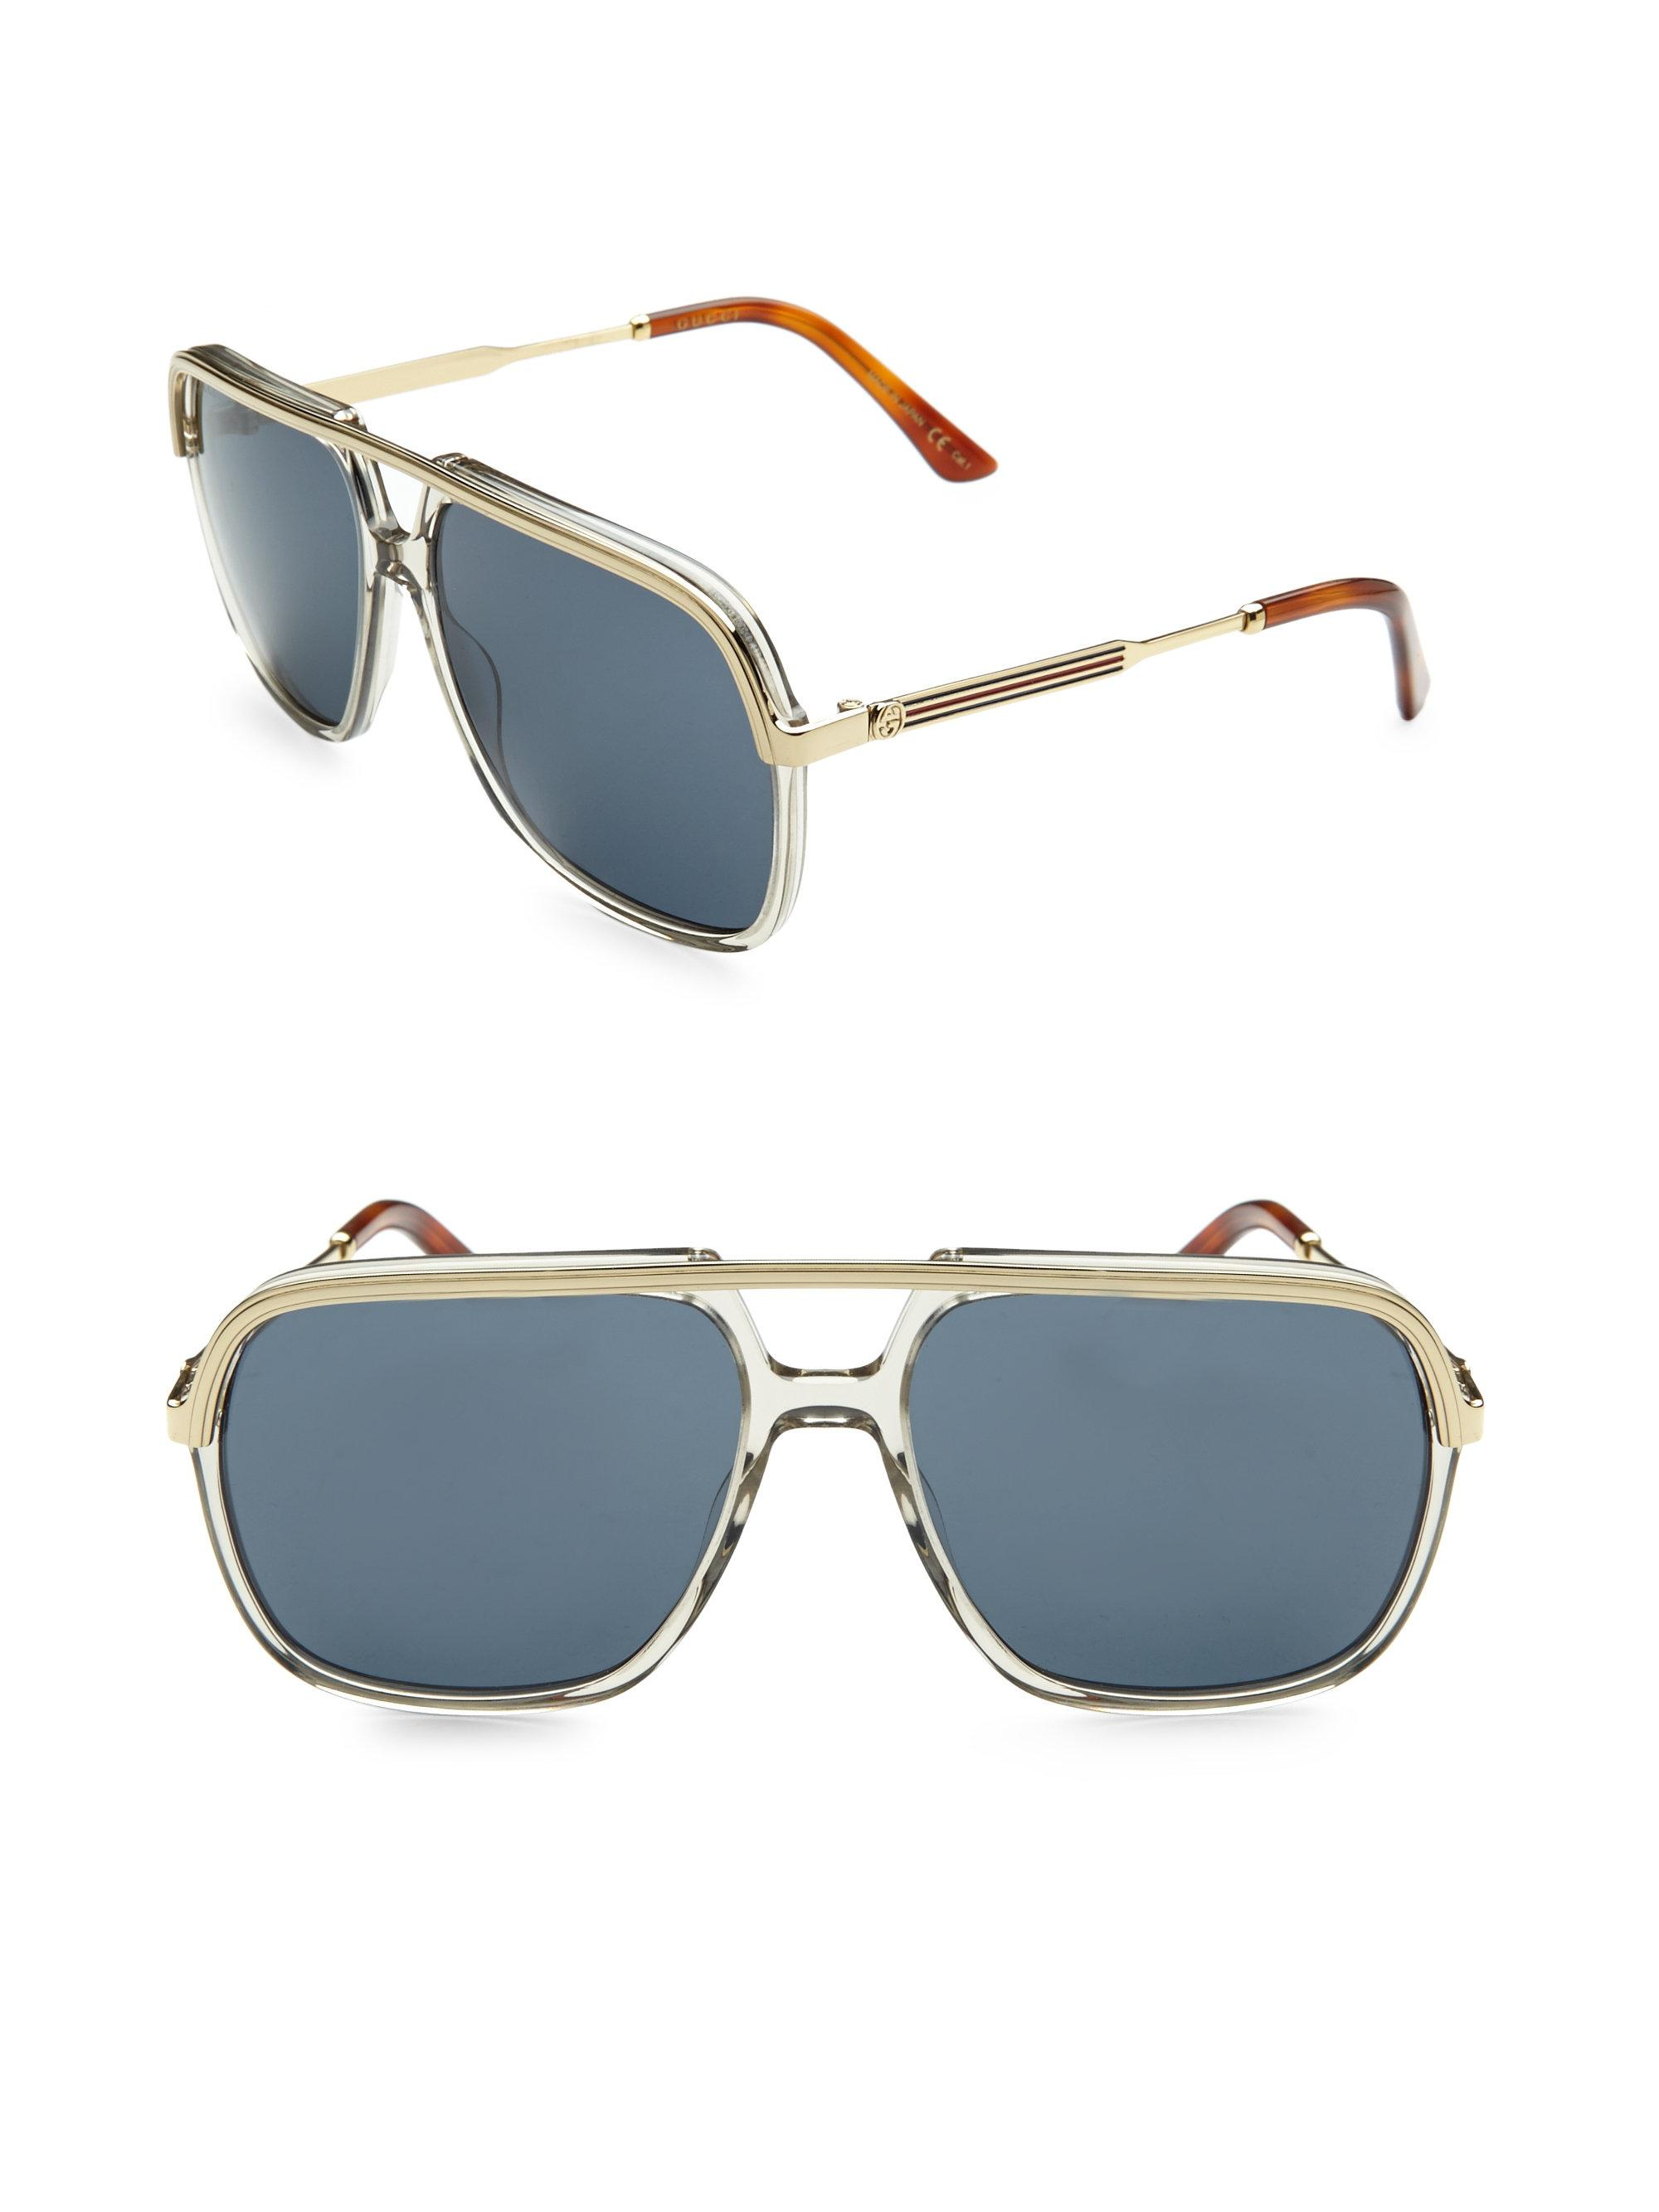 4b408bdfd46 Vintage Gucci Aviator Sunglasses « One More Soul